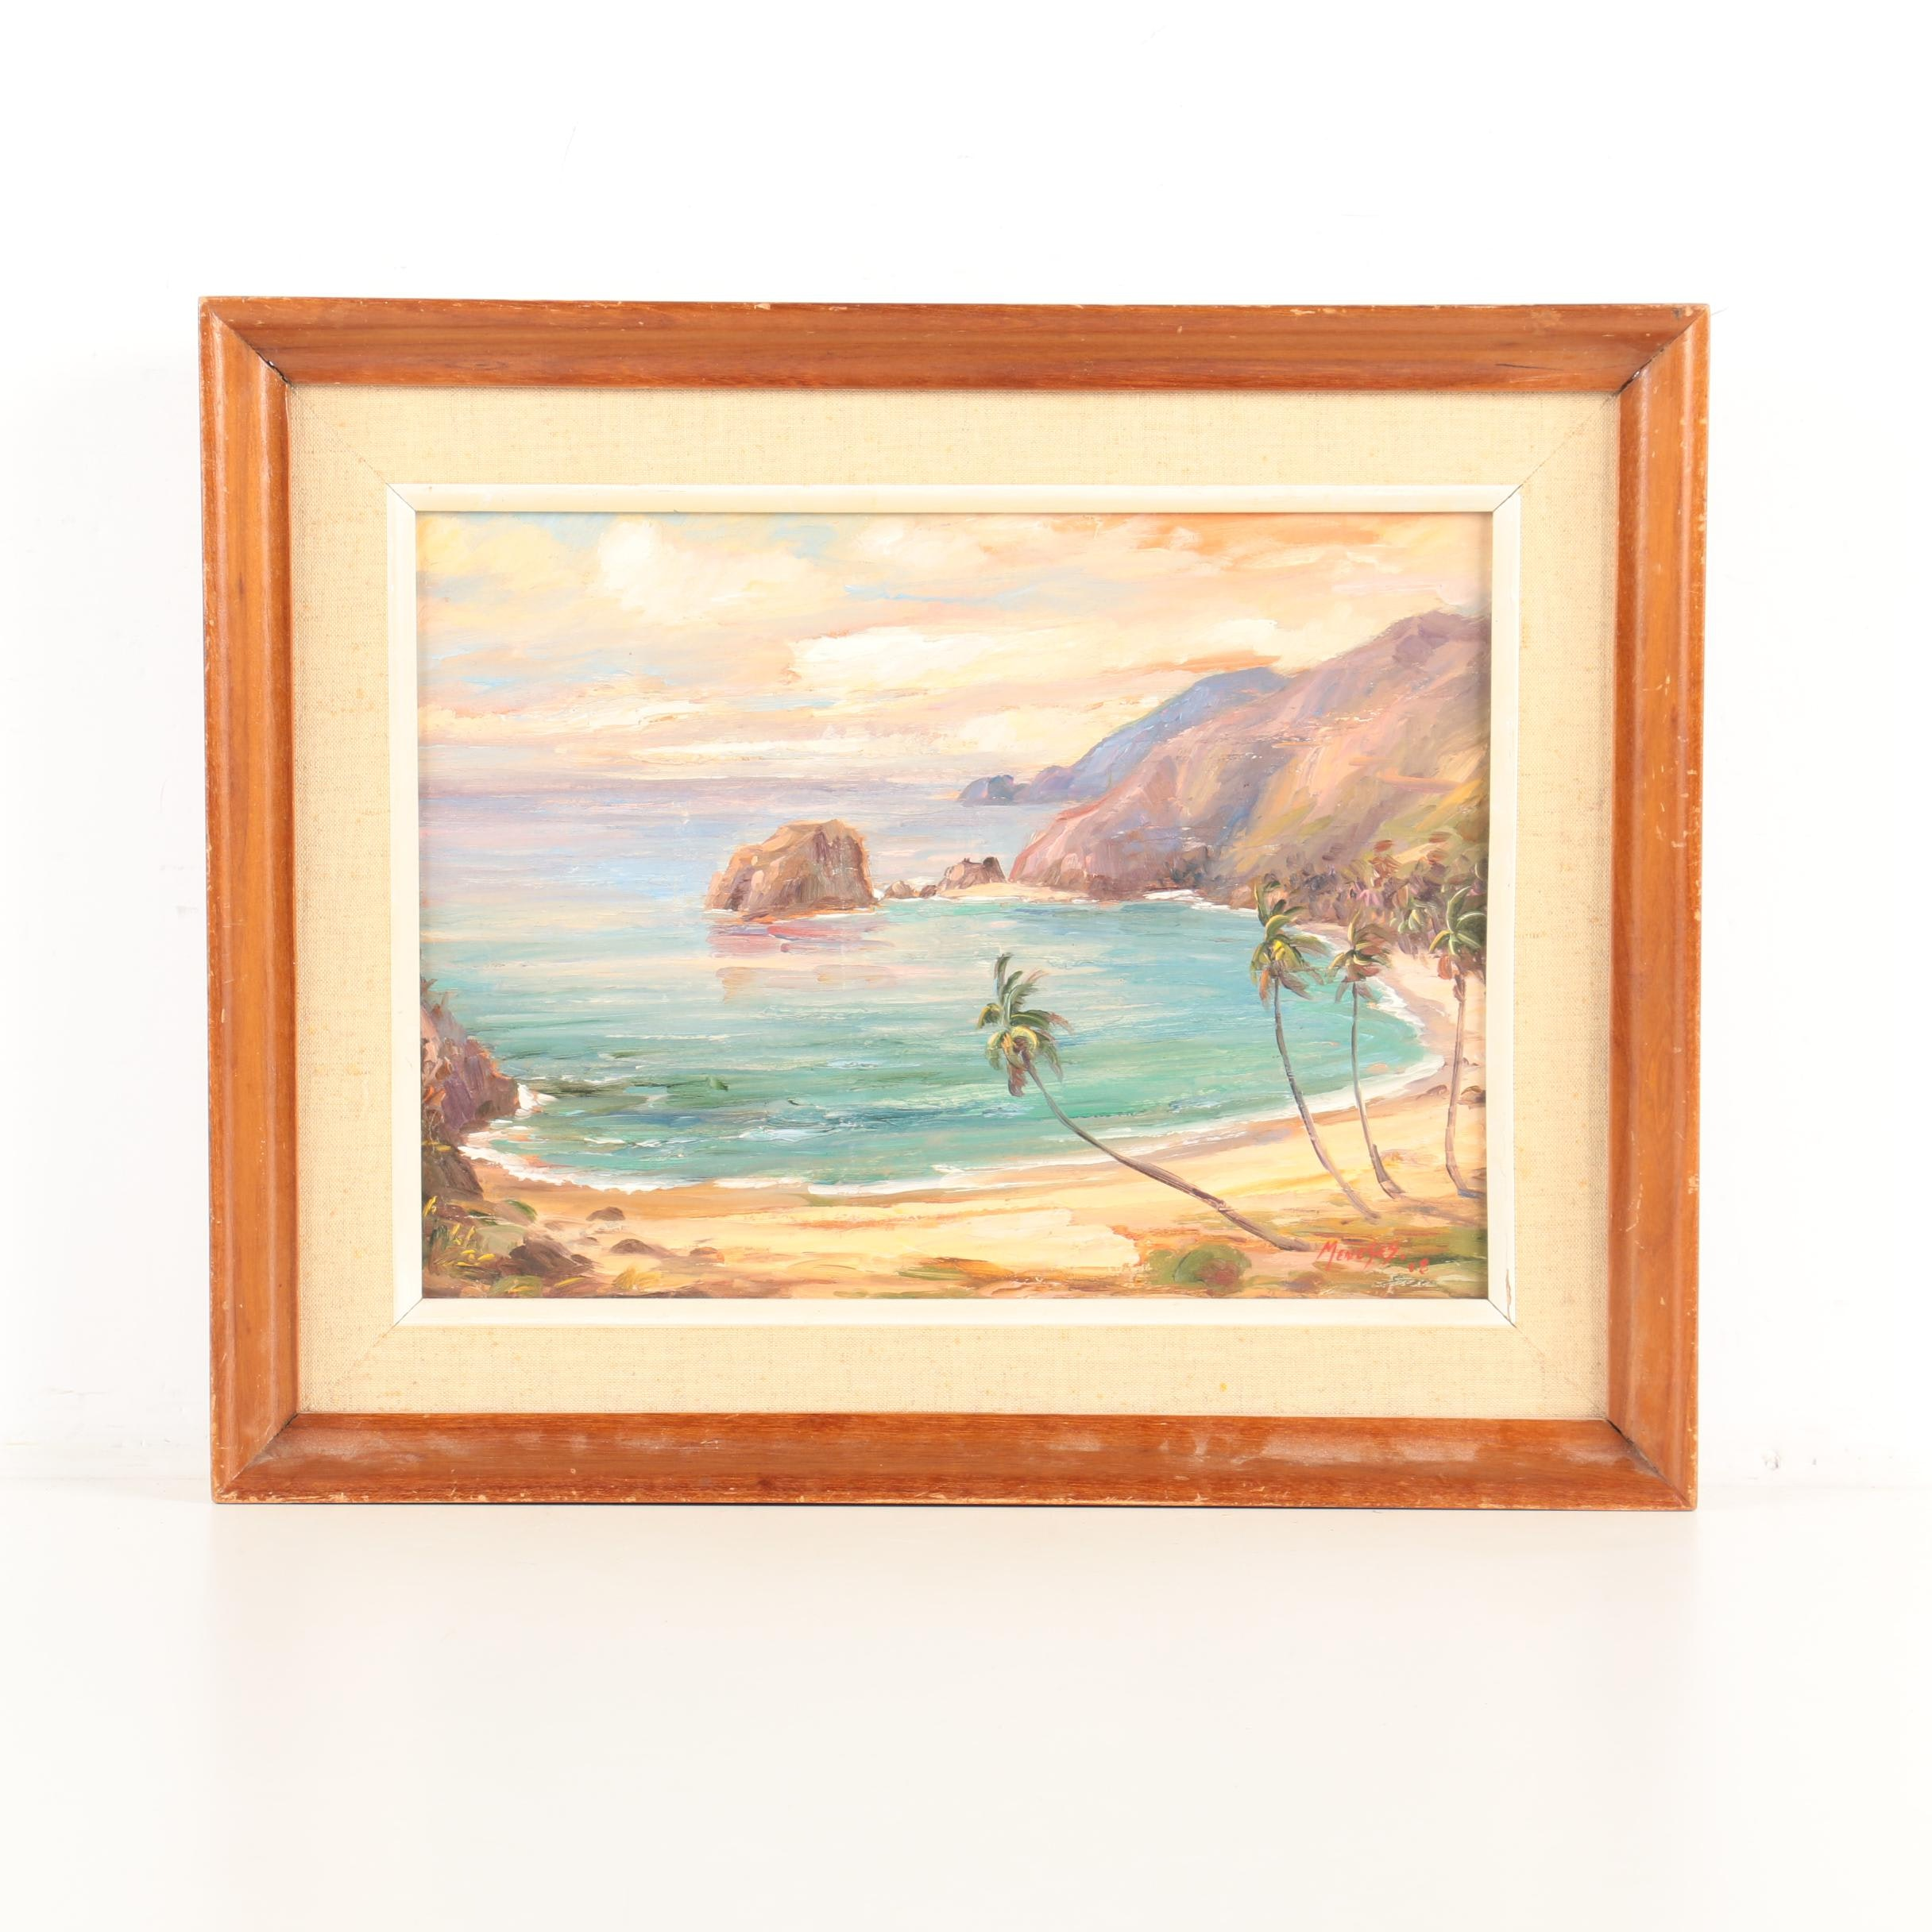 Meneses Oil Painting of a Beach